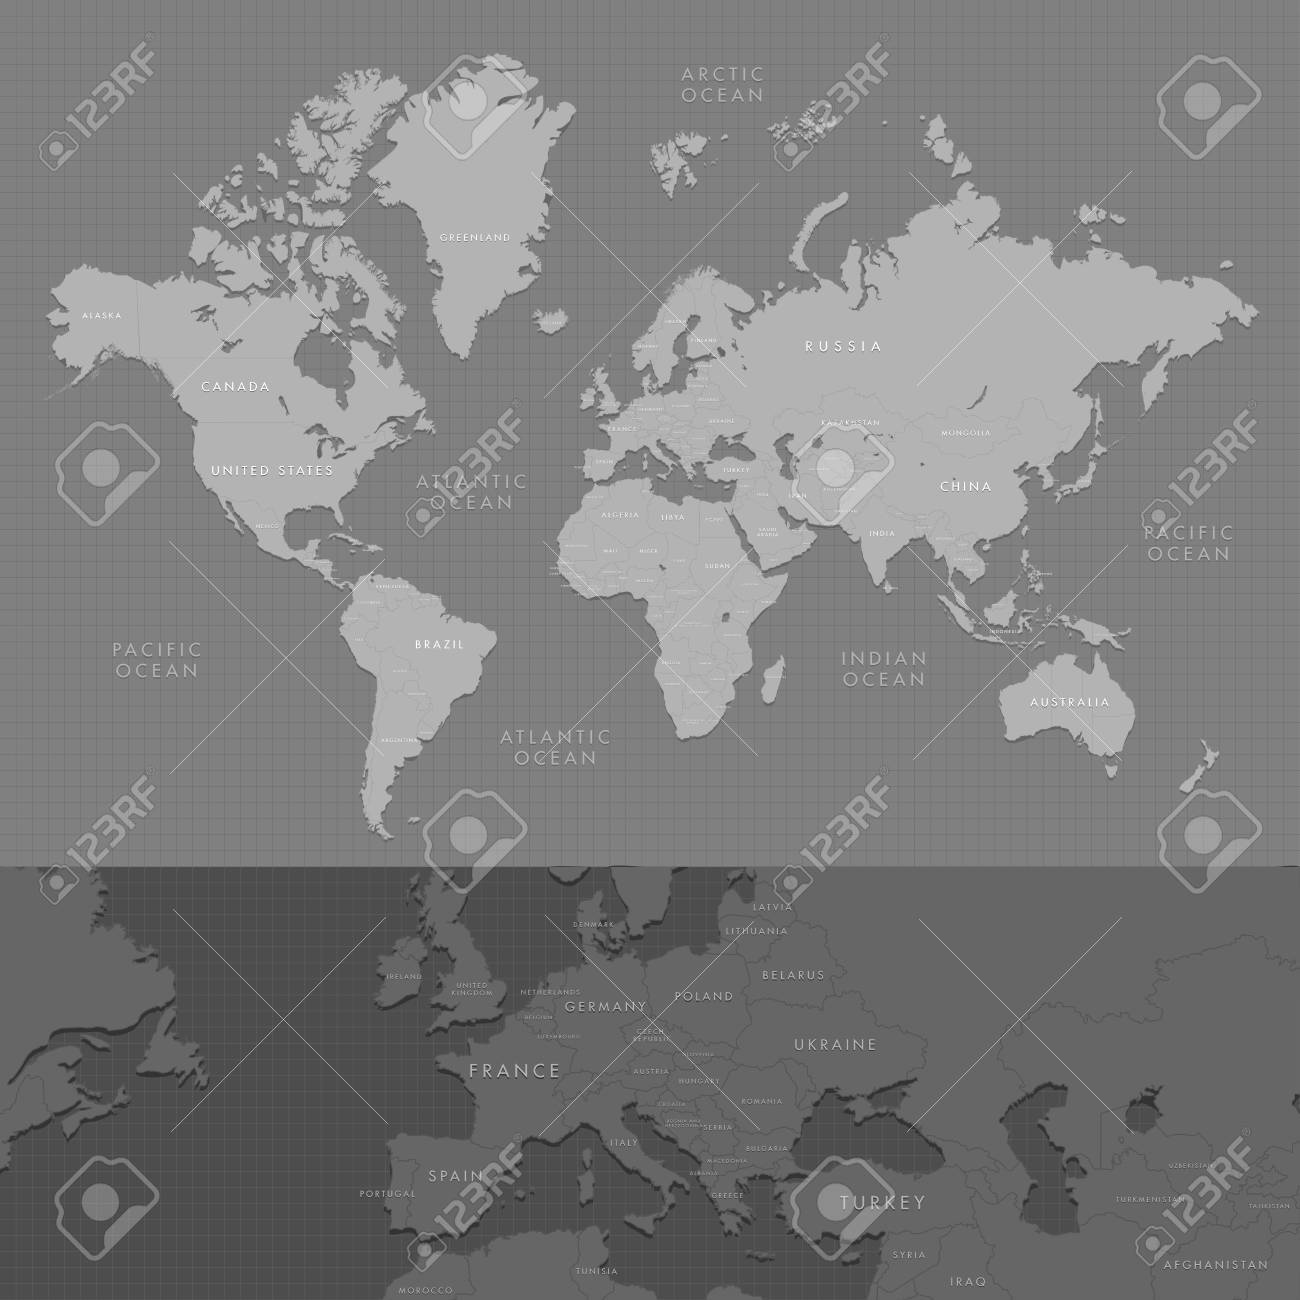 Europe World Maps With Countries Labeled on european rivers map labeled, world map with all countries labeled, europe map worksheet, europe political map with countries and capitals, europe map with rivers labeled, europe map with words,